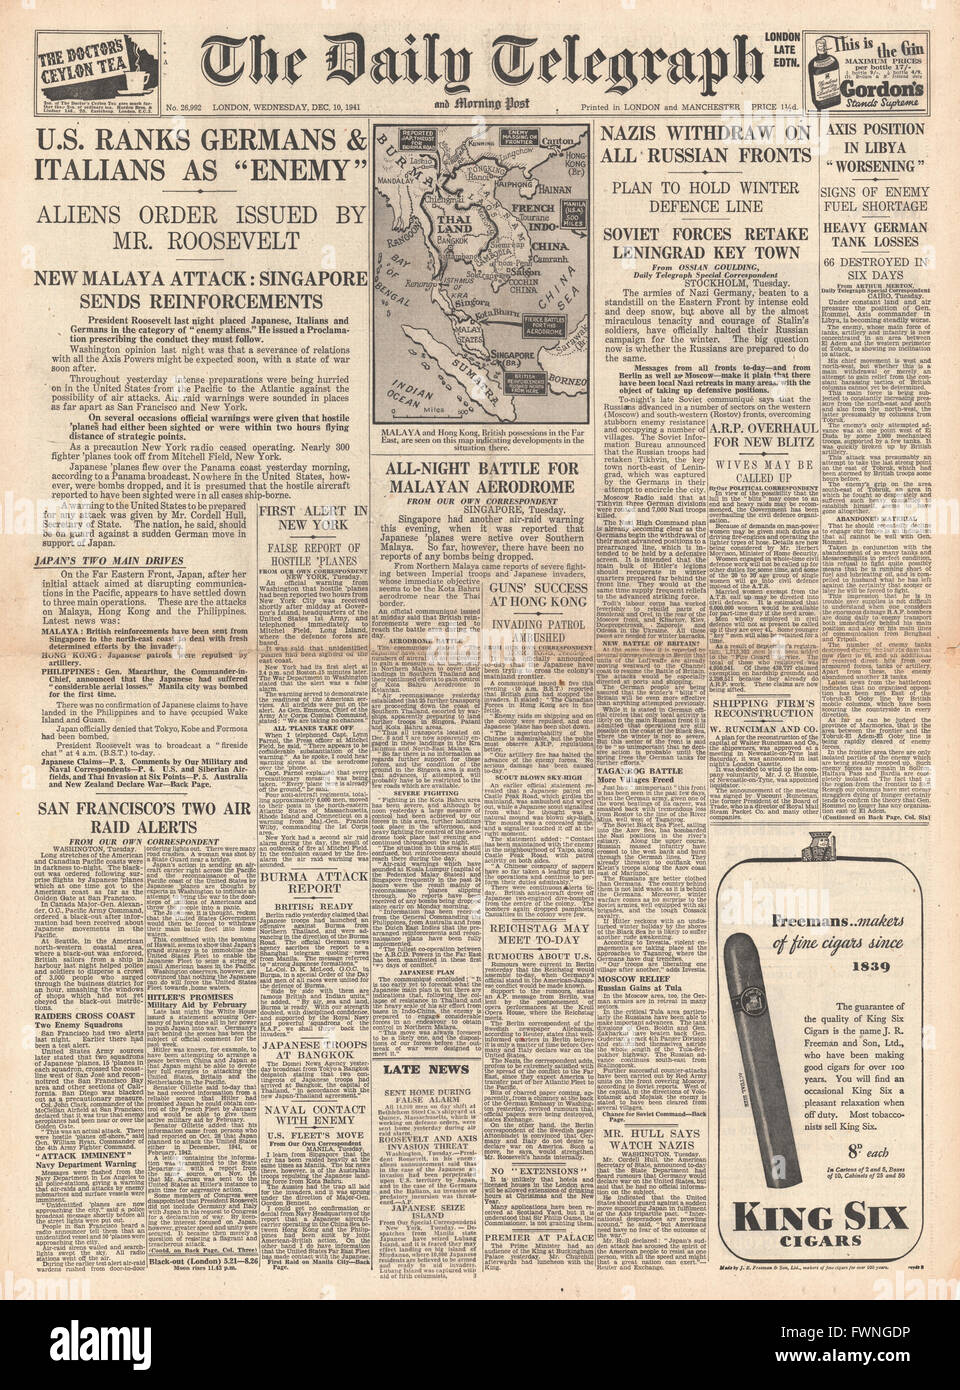 1941 front page Daily Telegraph Roosevelt Issues 'Enemy Aliens' Order against Germans, Italians and Japanese - Stock Image